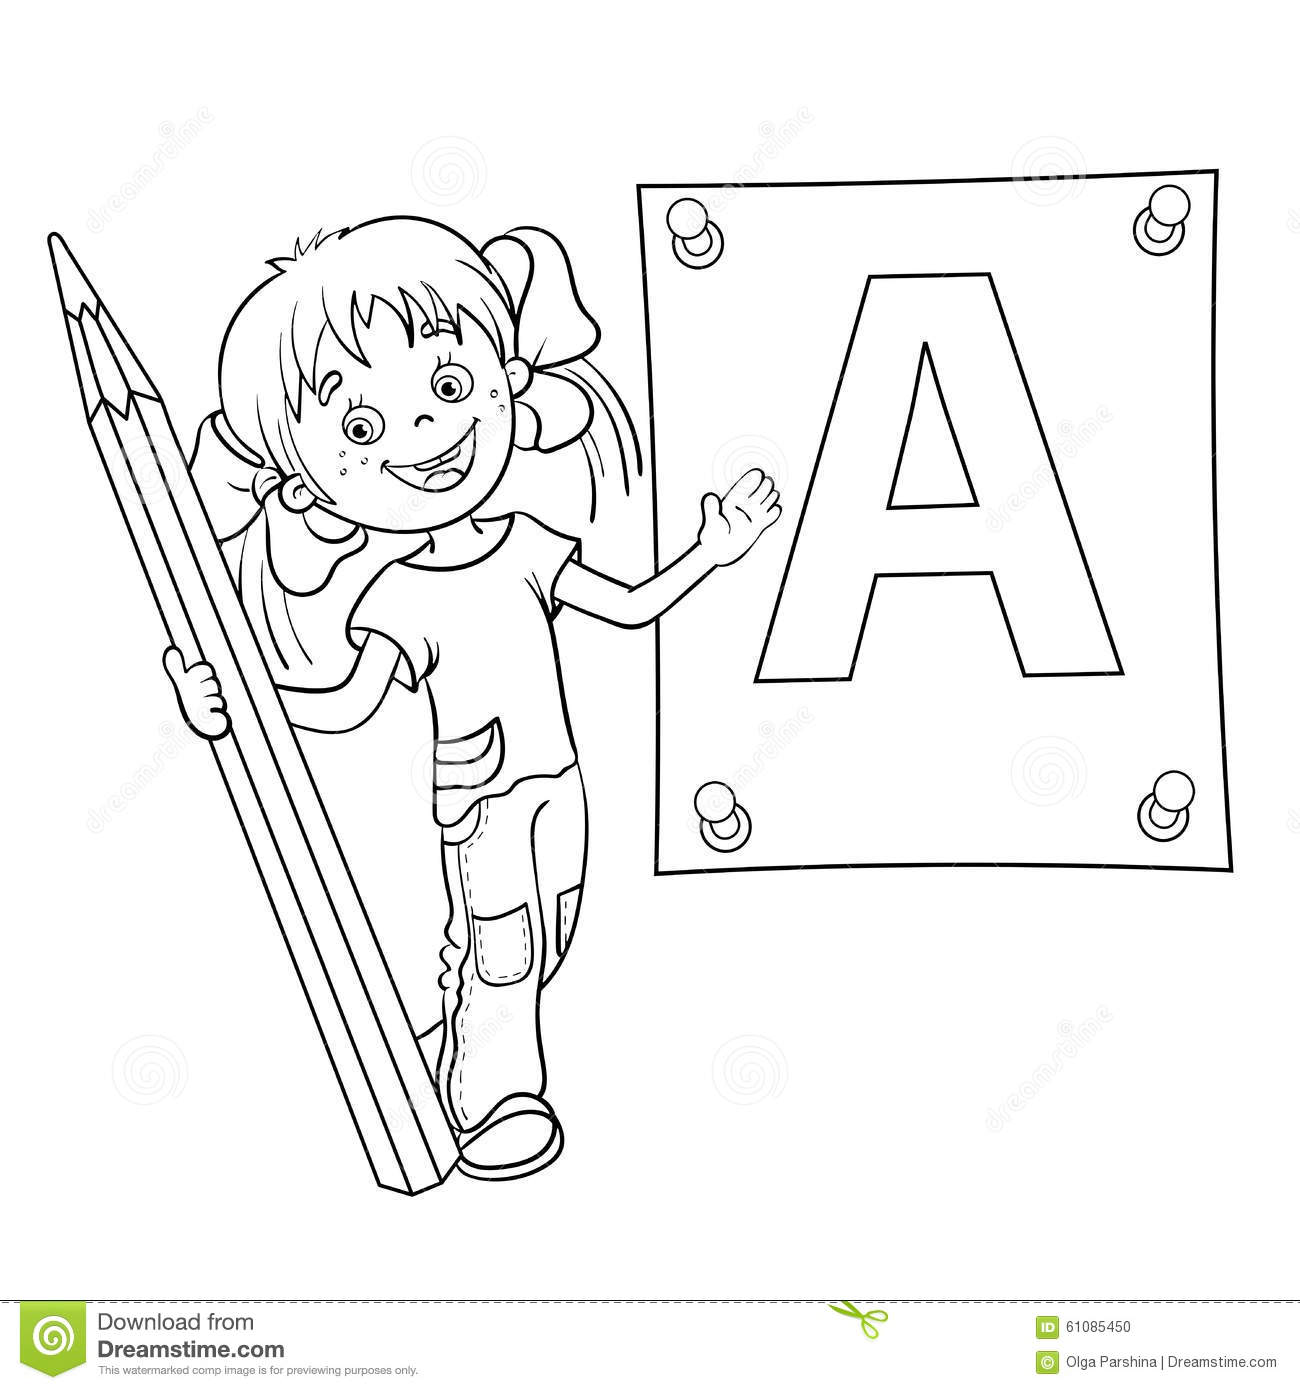 Coloring Page Outline Of A Cartoon Girl With Pencil And